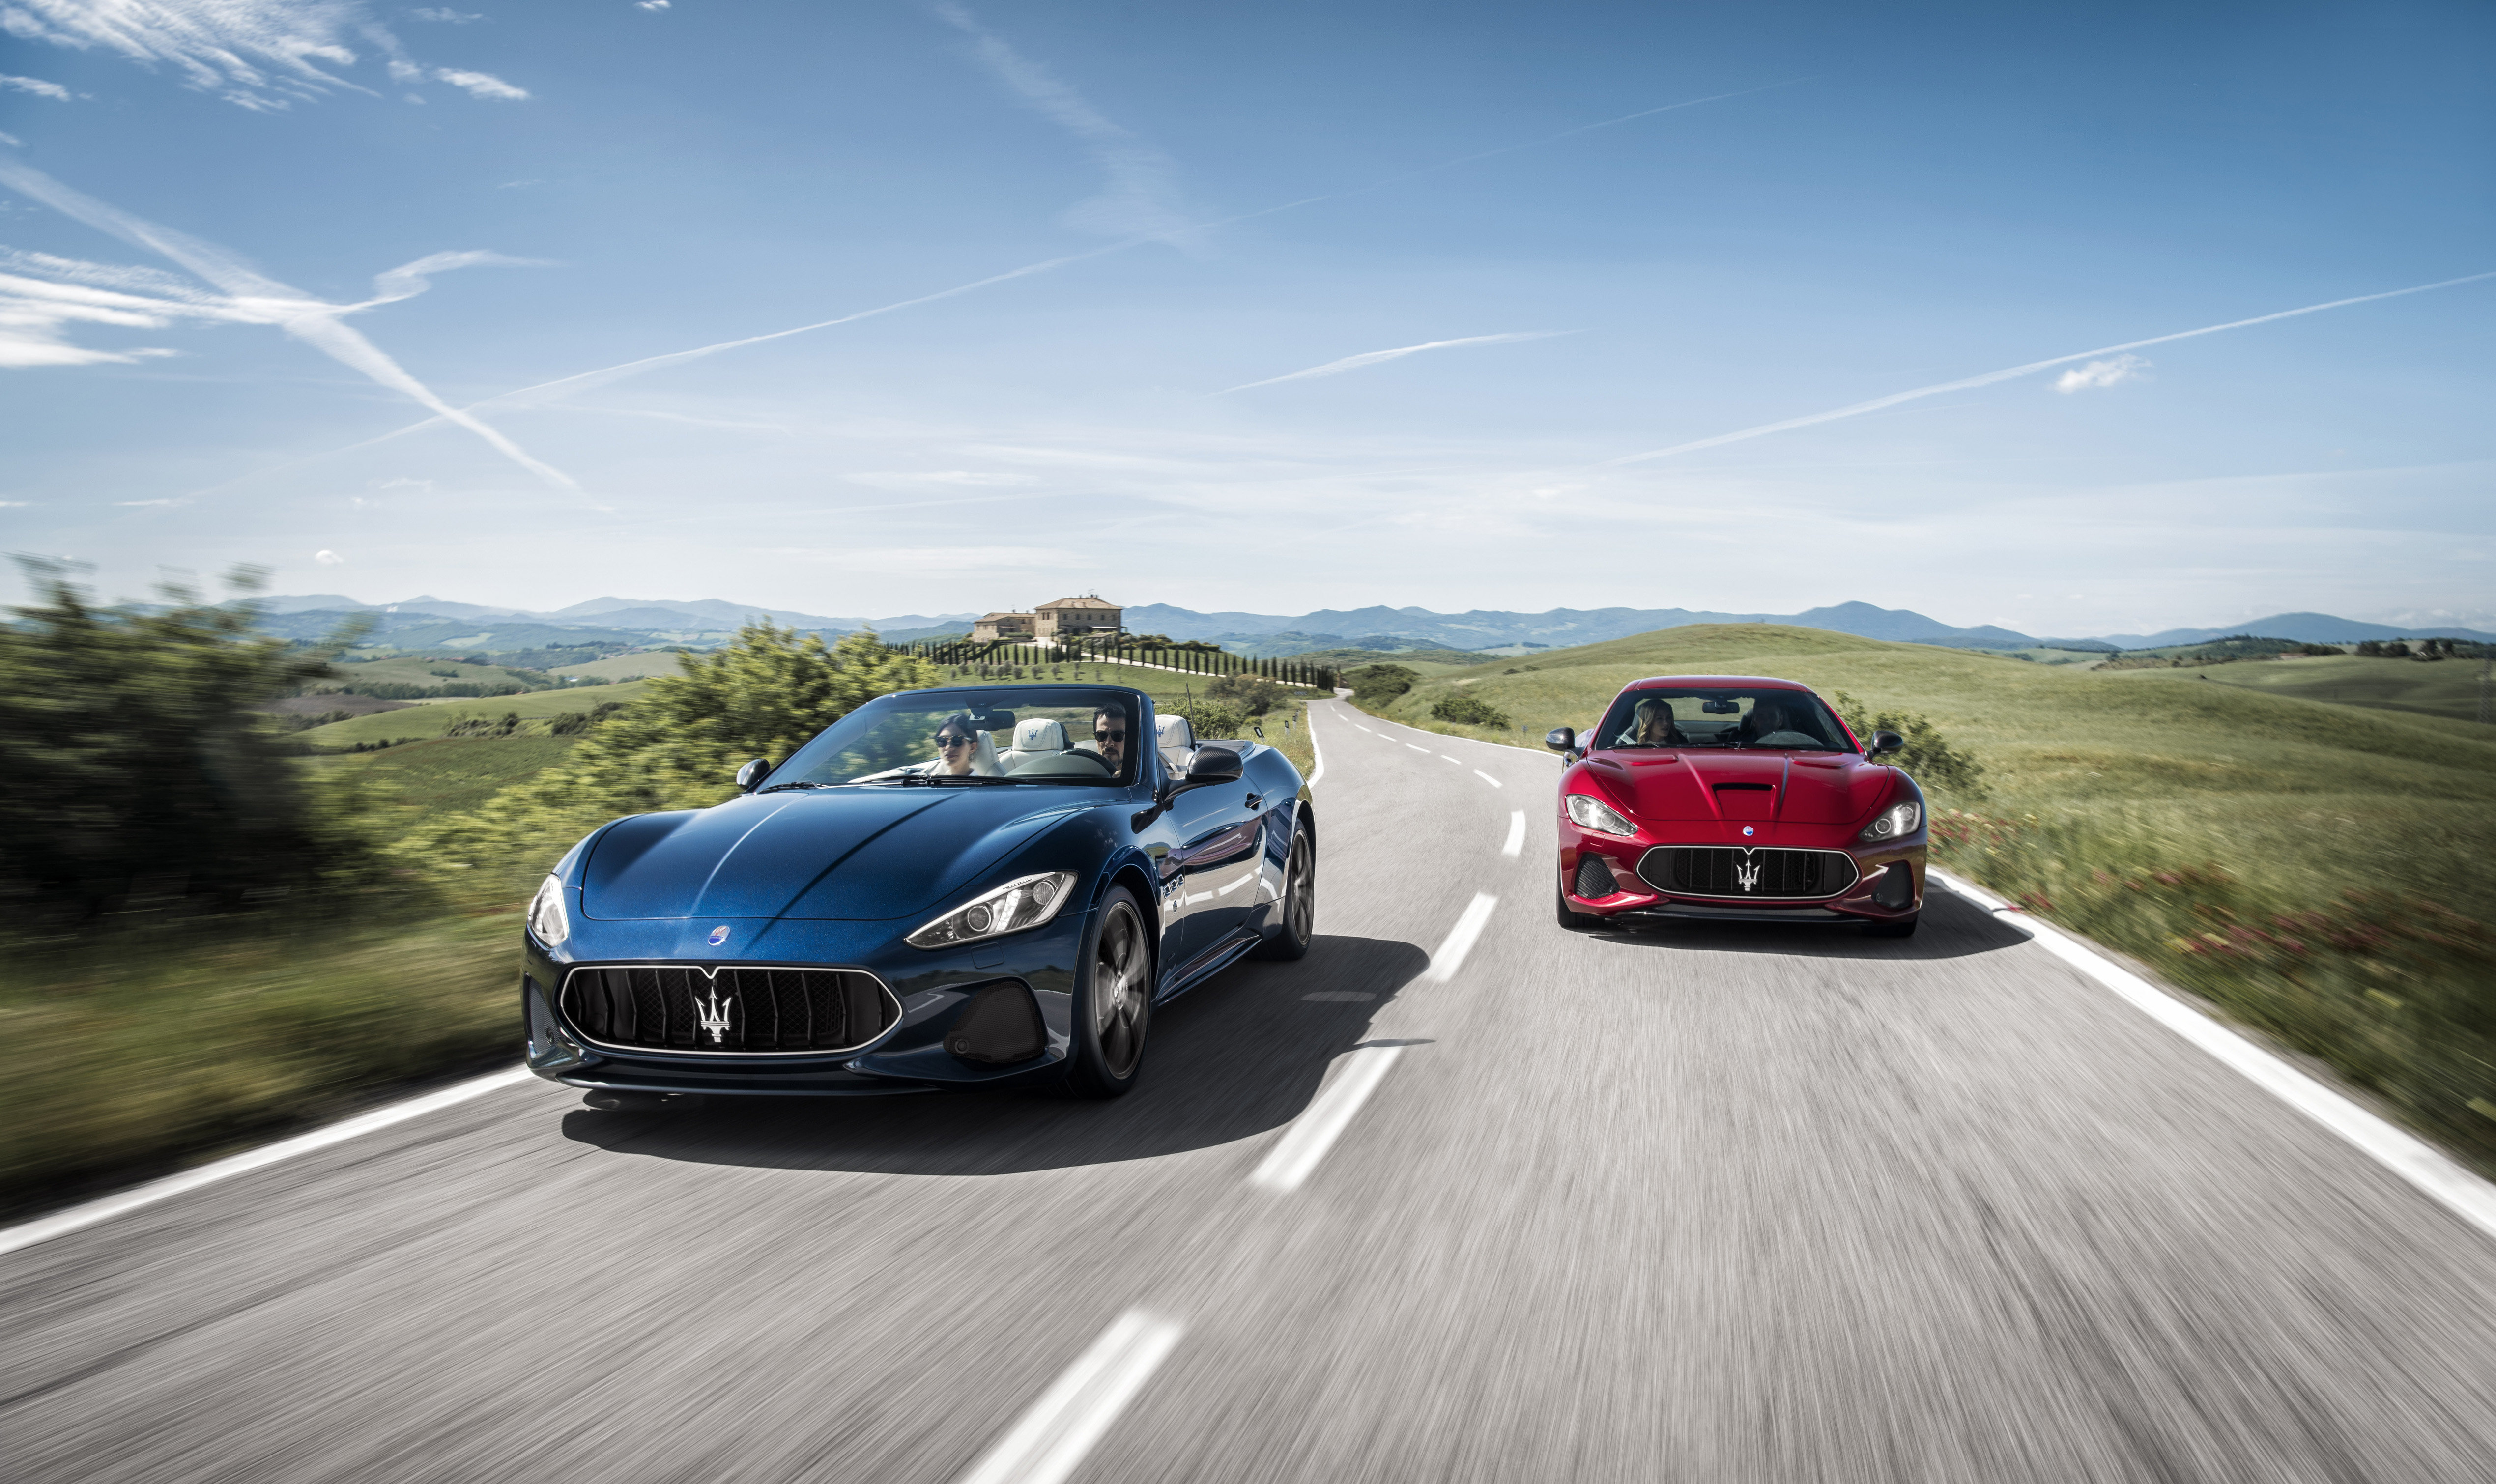 Blue and red maserati granturismo's driving down a country road in Wilkes Barre PA